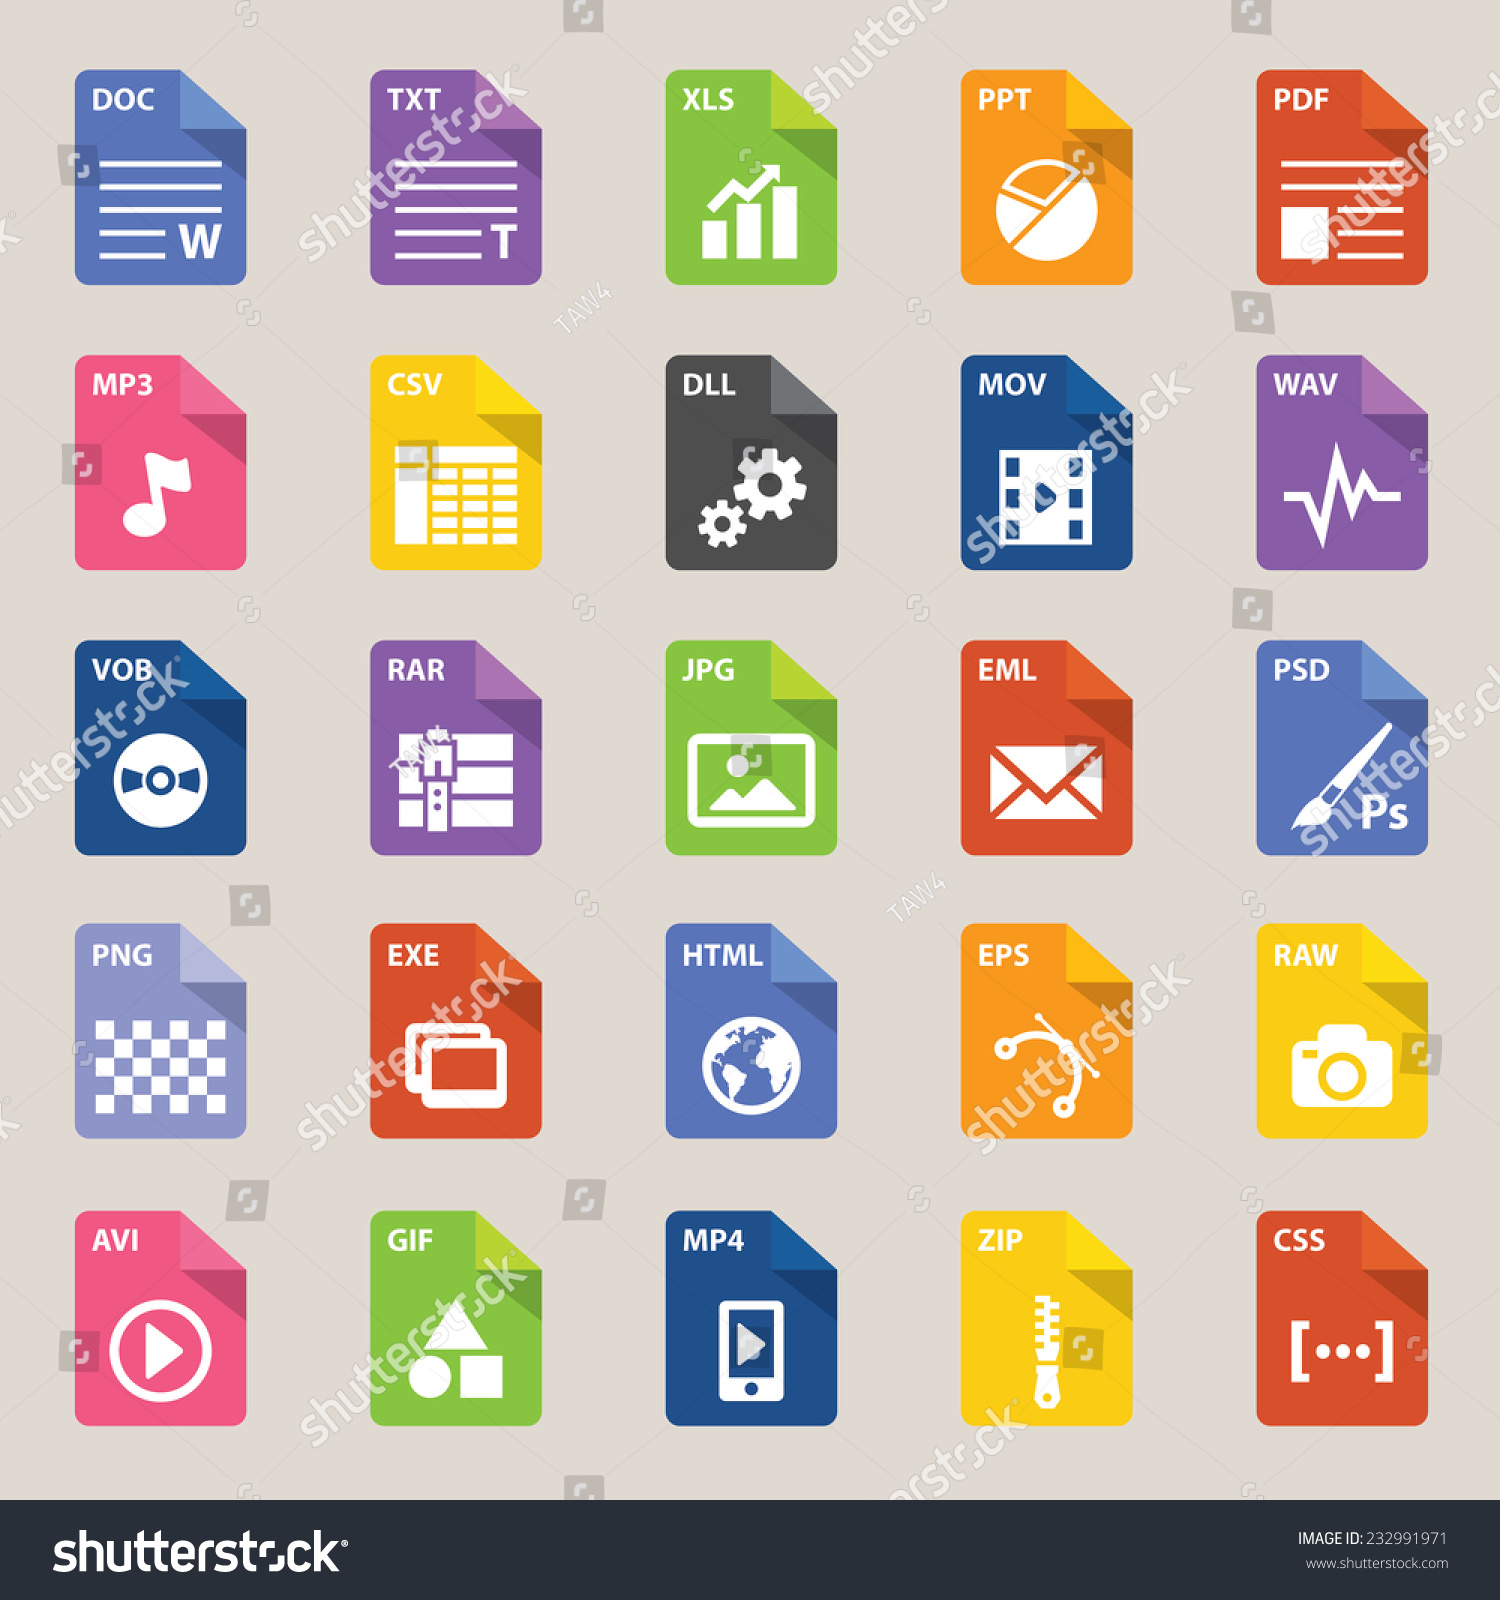 File Types Icon Stock Vector Illustration 232991971 : Shutterstock: www.shutterstock.com/pic-232991971/stock-vector-file-types-icon.html